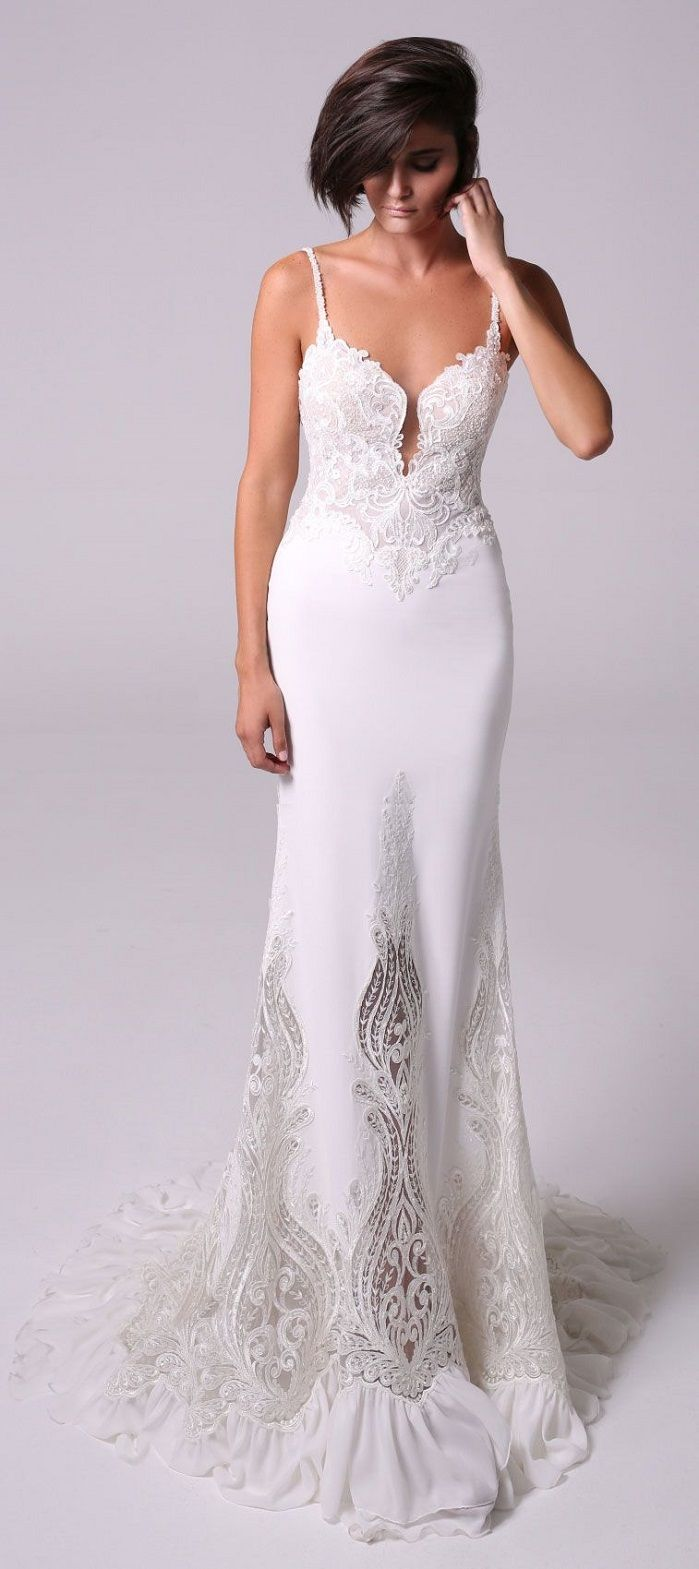 Michal Medina 2018 Wedding Dresses | Skin tight, Mermaid gown and ...